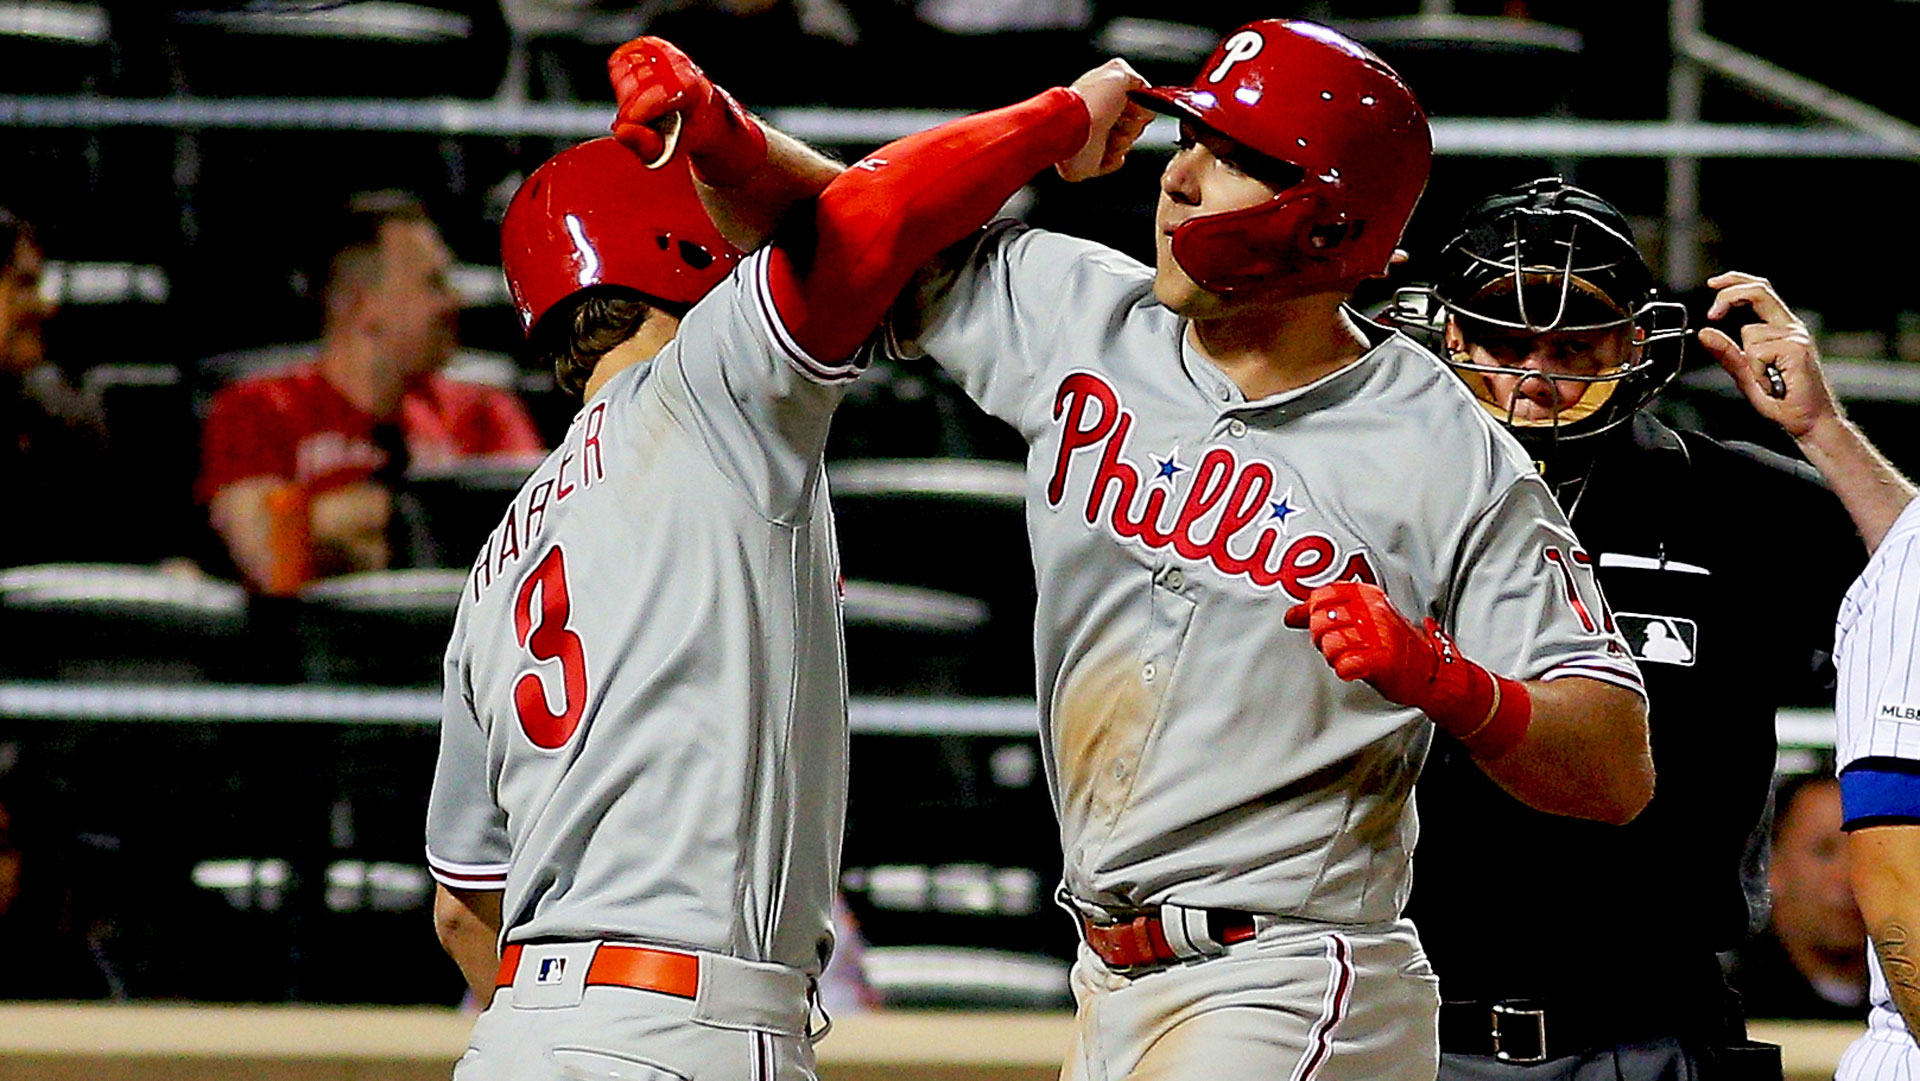 Rhys Hoskins, Phillies stroll out of New York with statement win